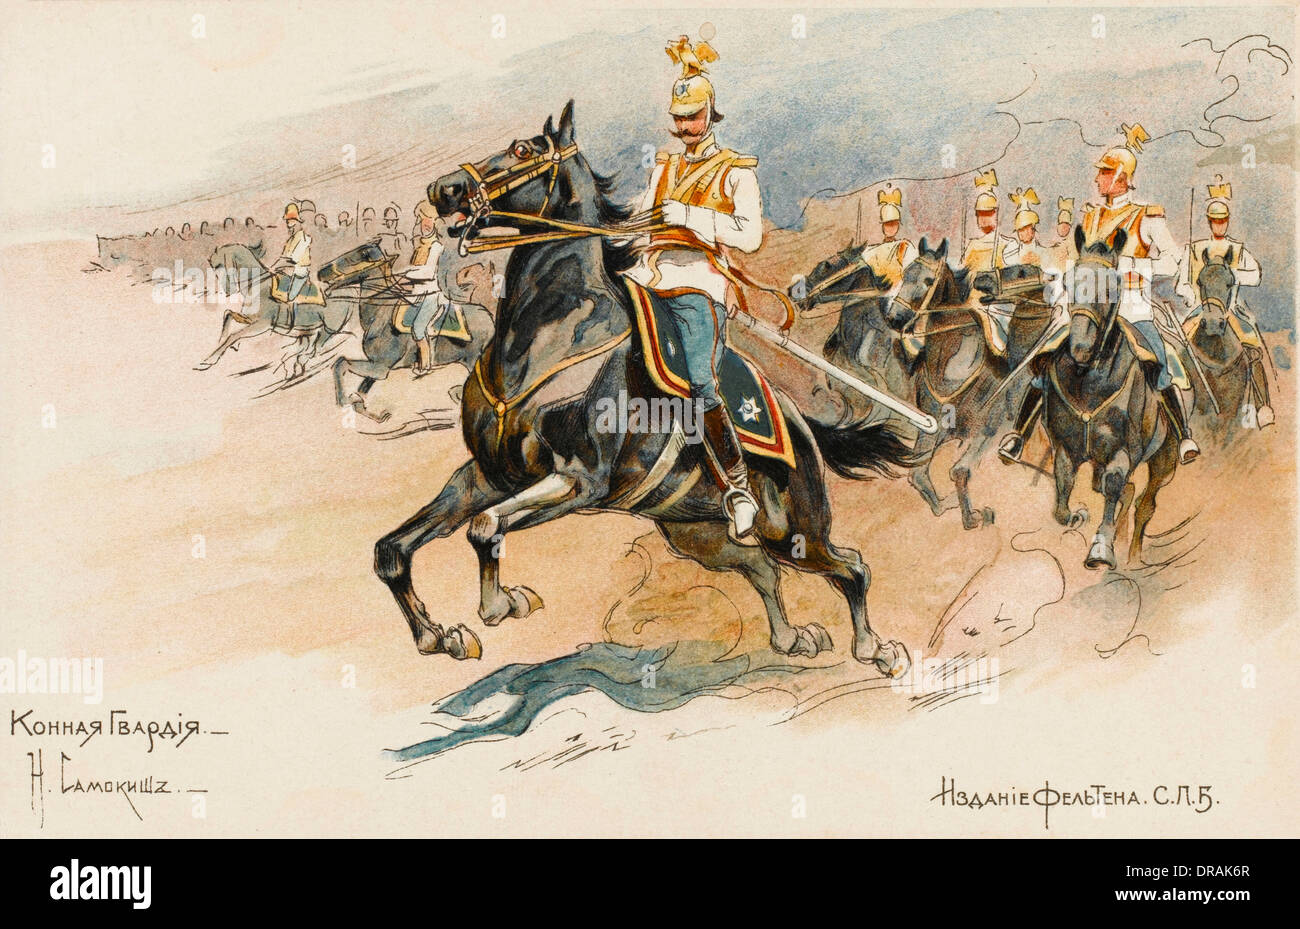 Cavalry of the Tsarist army - Stock Image